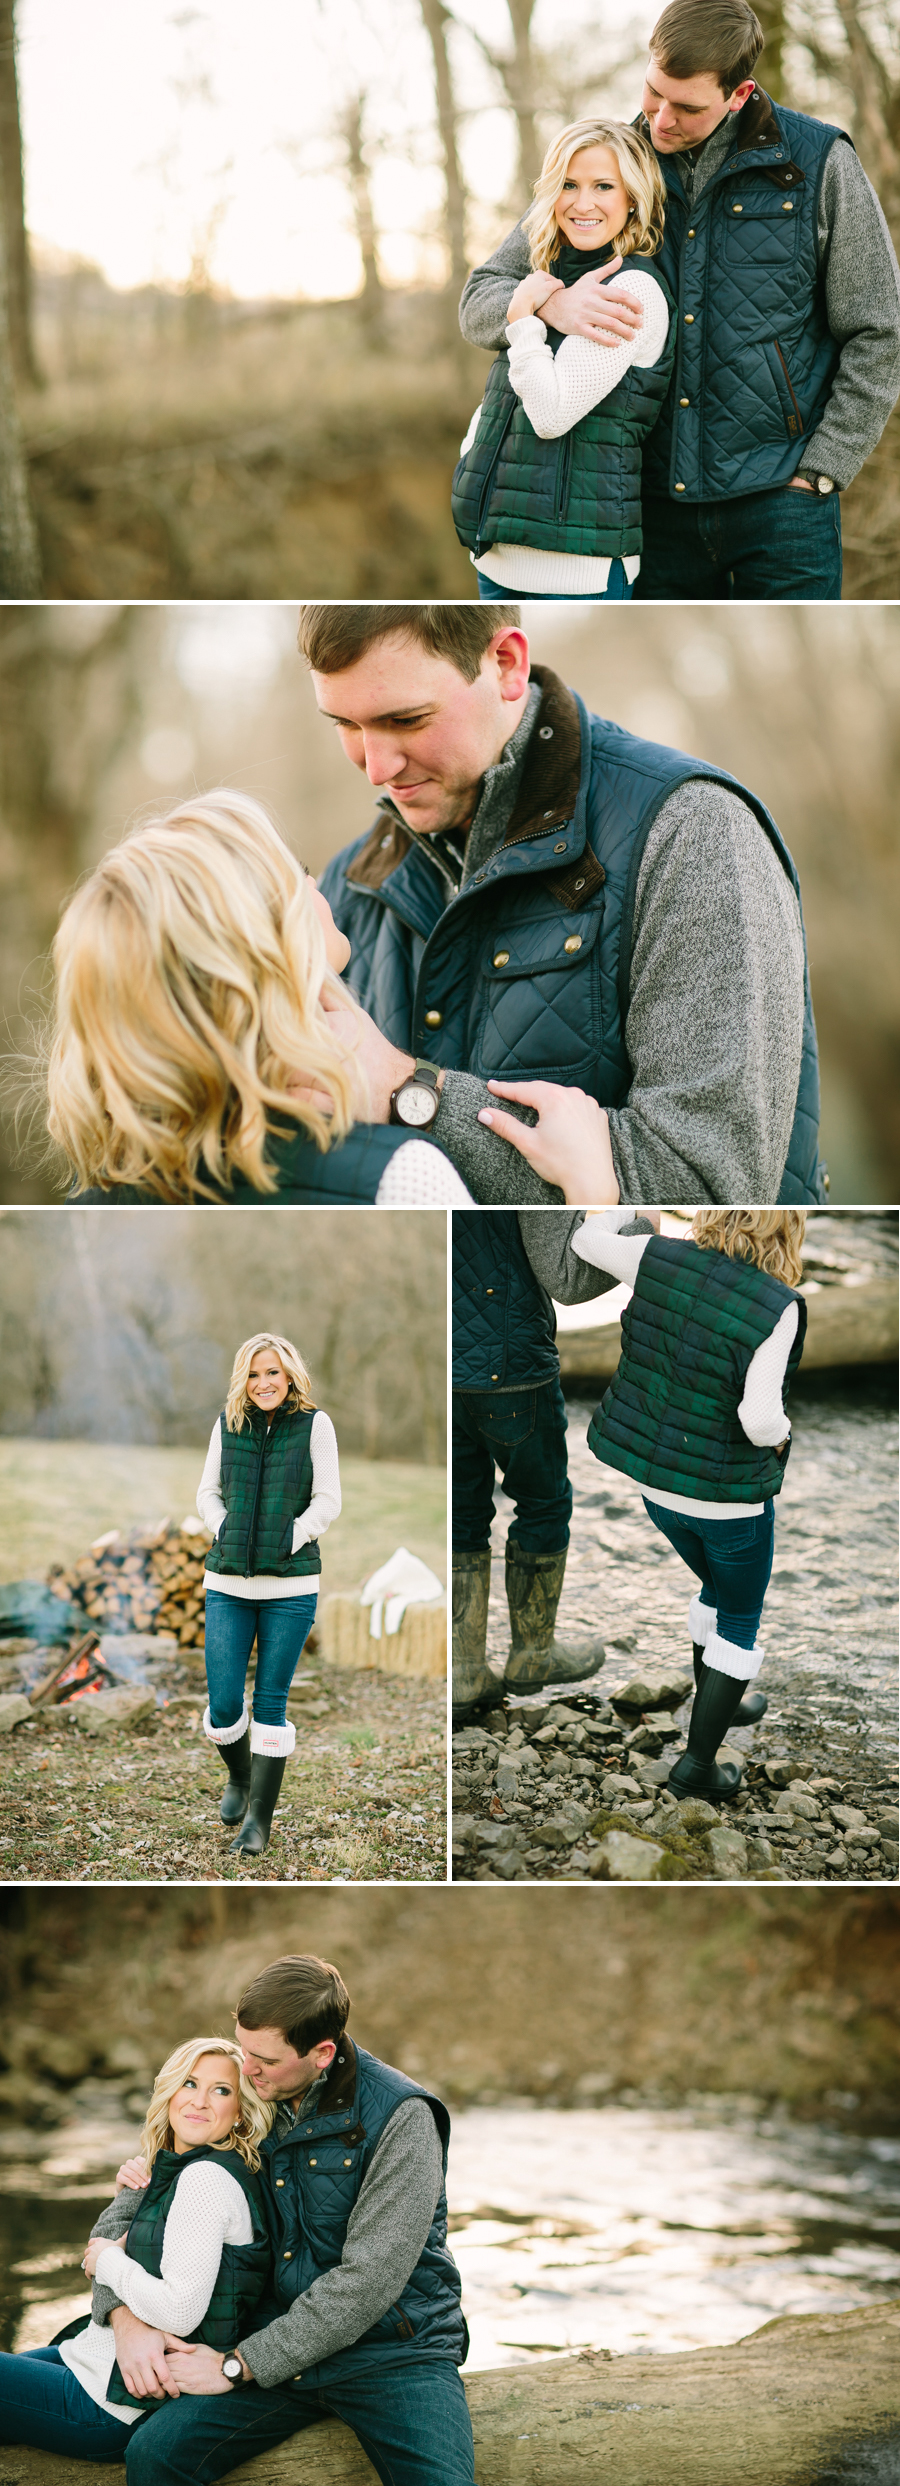 Franklin TN Farm Engagement Session